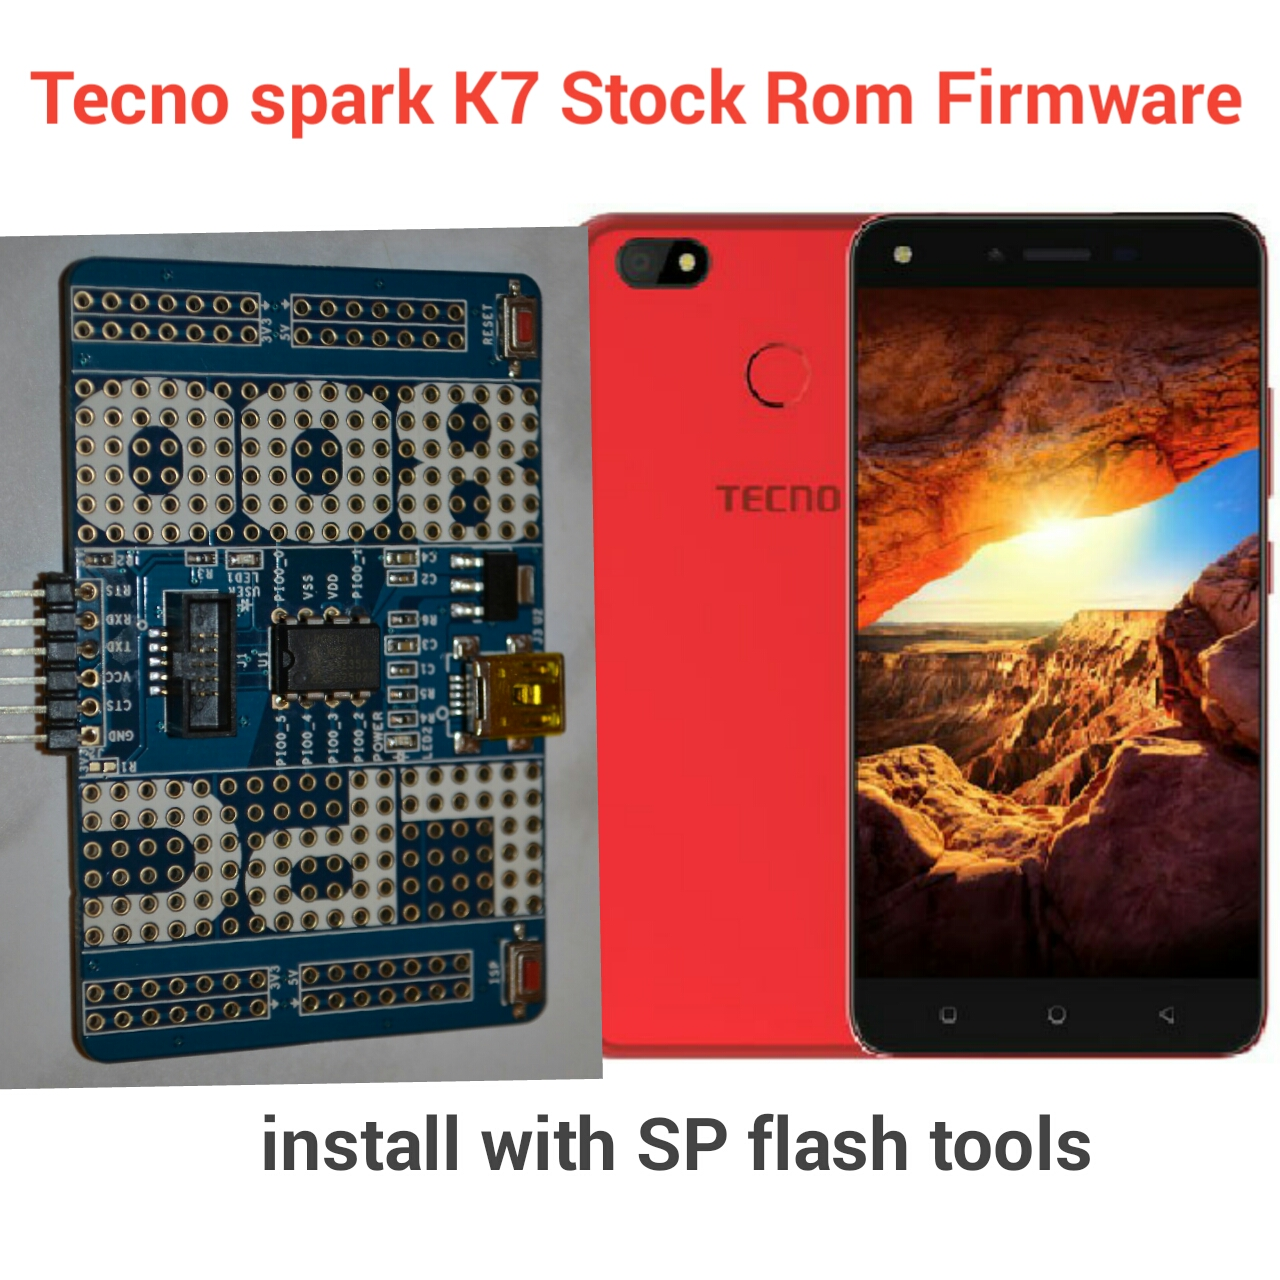 download Tecno Spark K7 Official Stock Rom Firmware | phone reviews